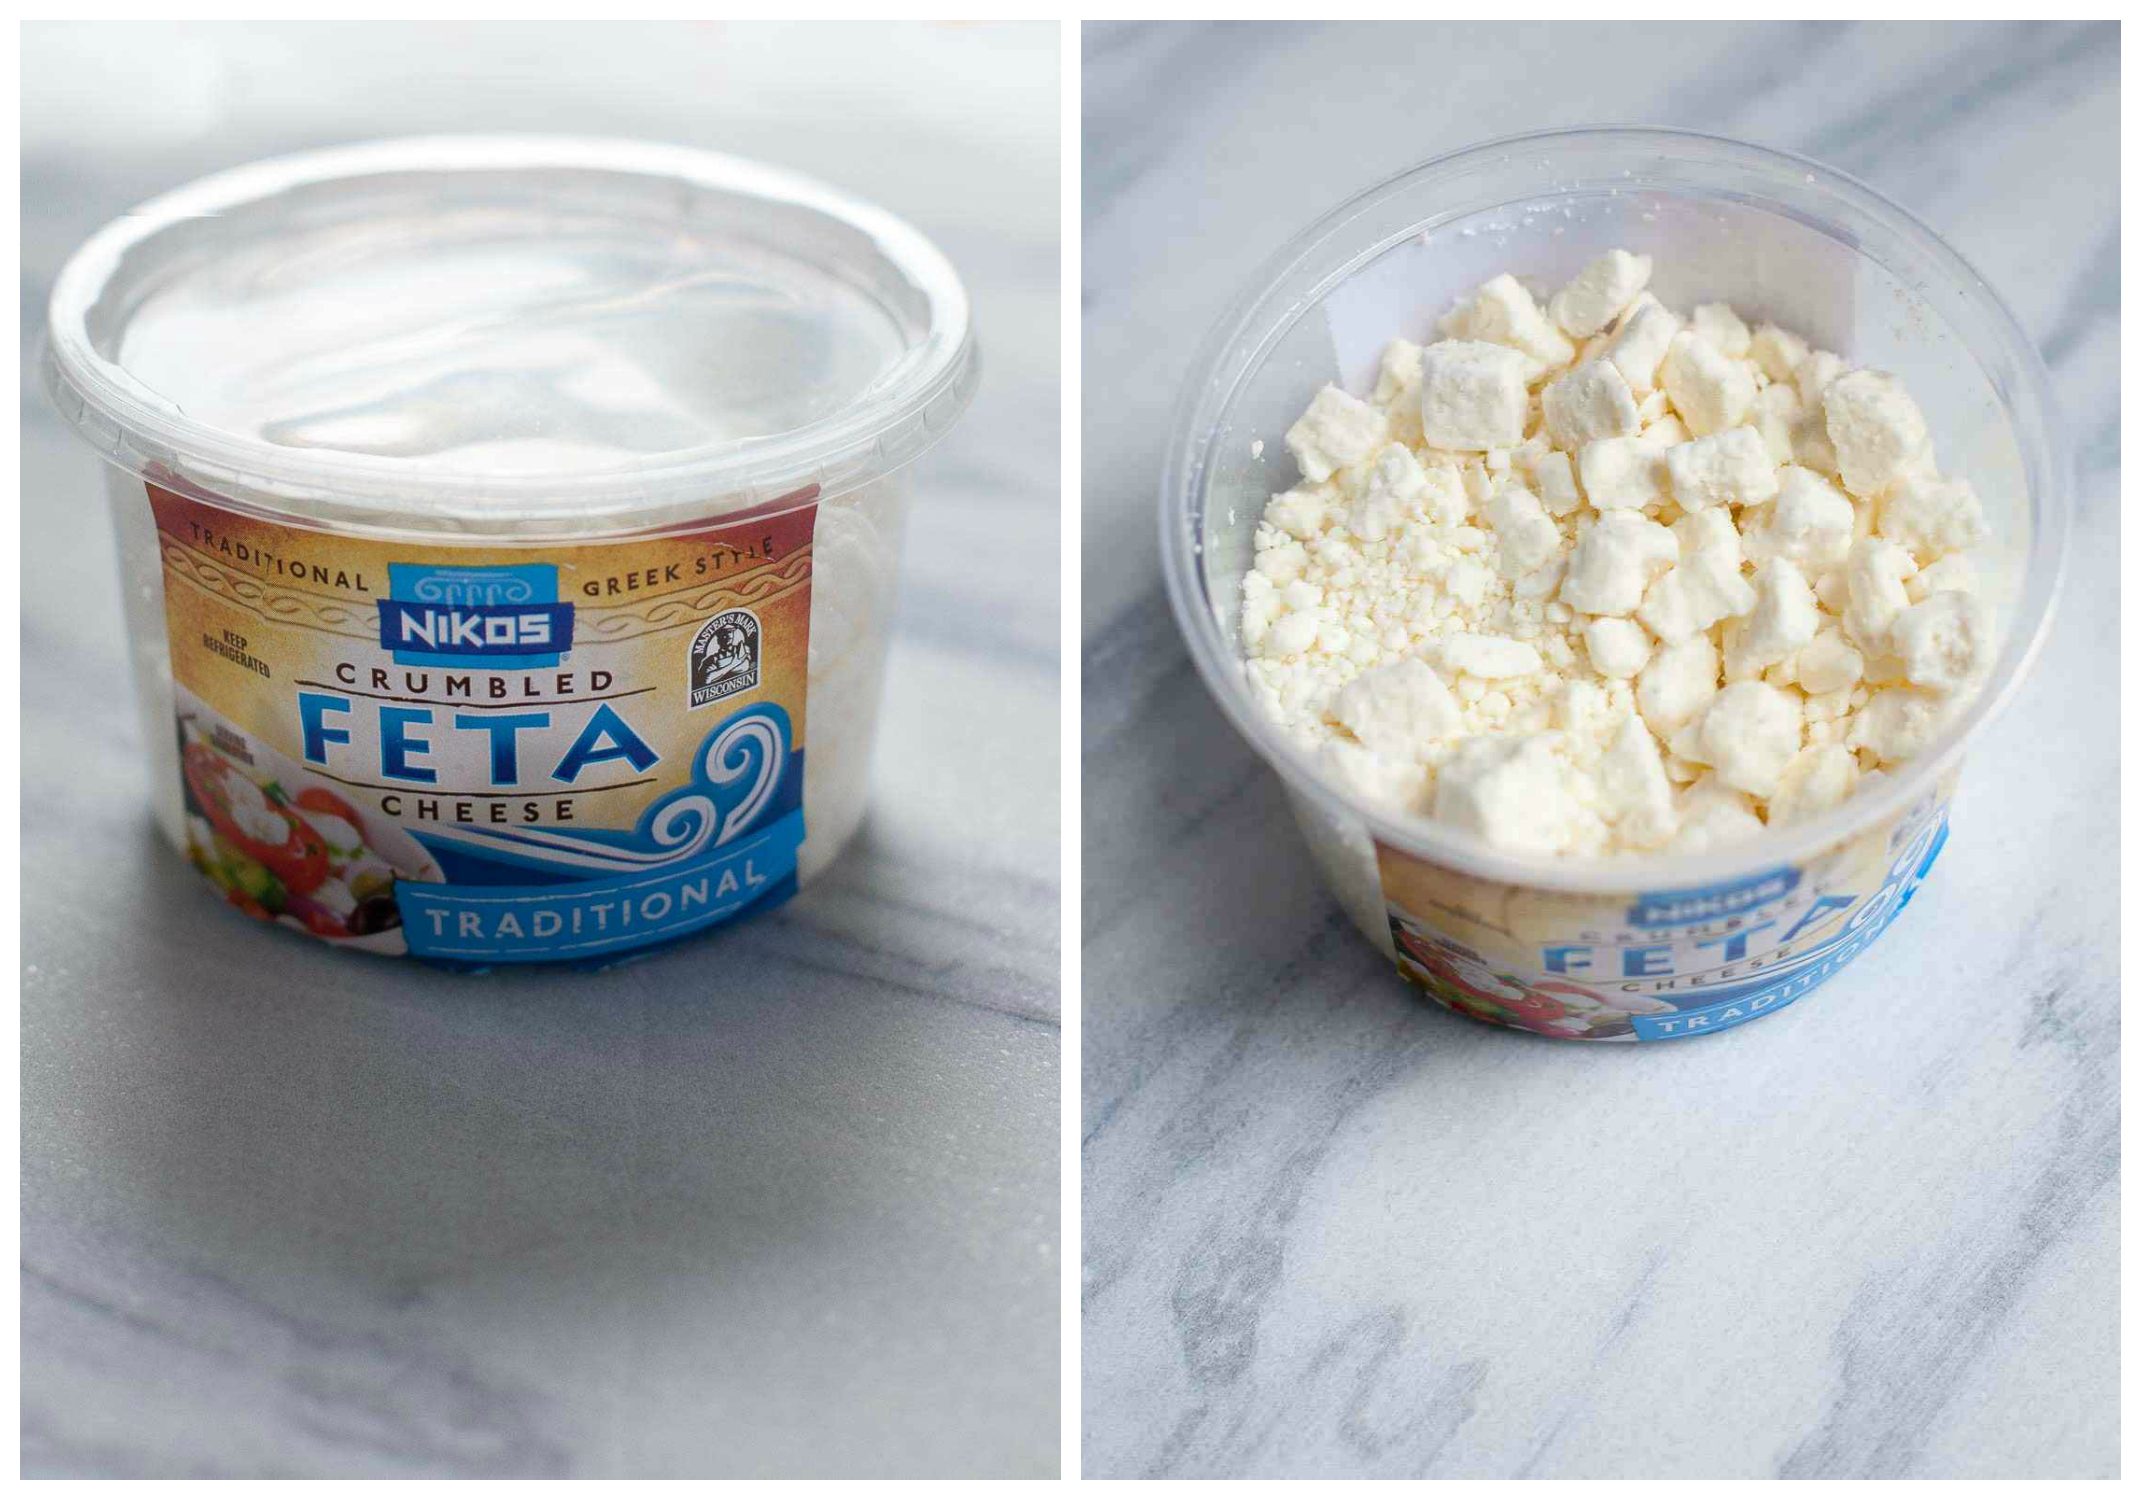 Creamy Whipped Feta made with Nikos | Get more feta recipes & enter to win a trip to Hawaii here: https://ooh.li/1cd7e02 #sp